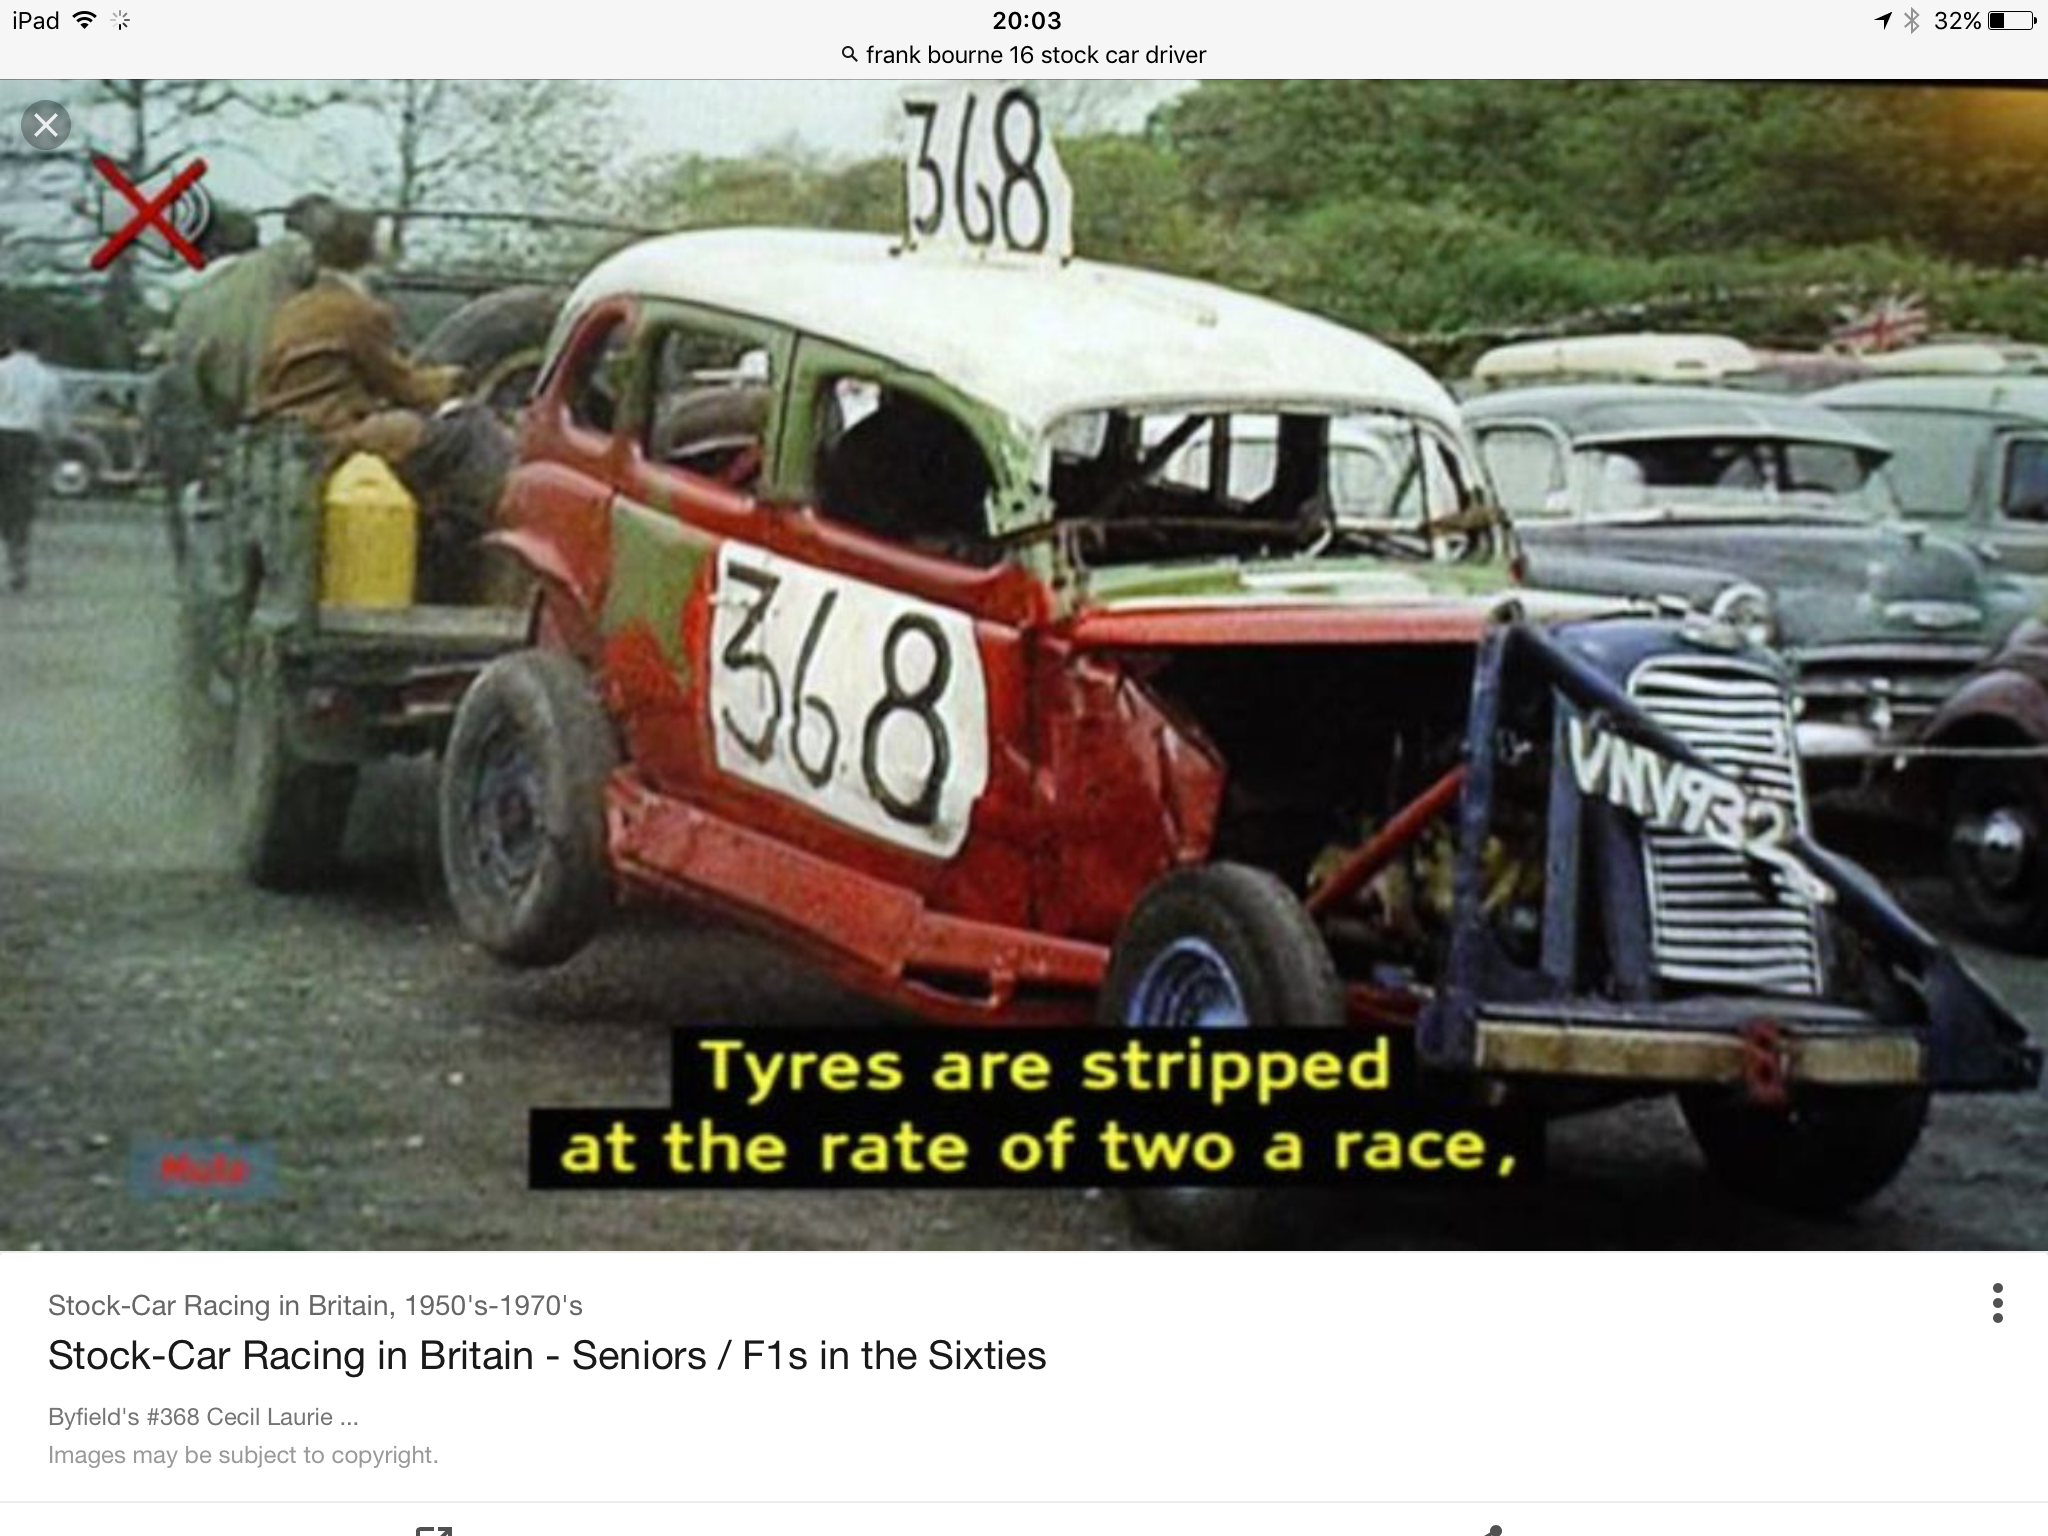 Pin by Lee Downer on Old race cars | Pinterest | Dirt track racing ...